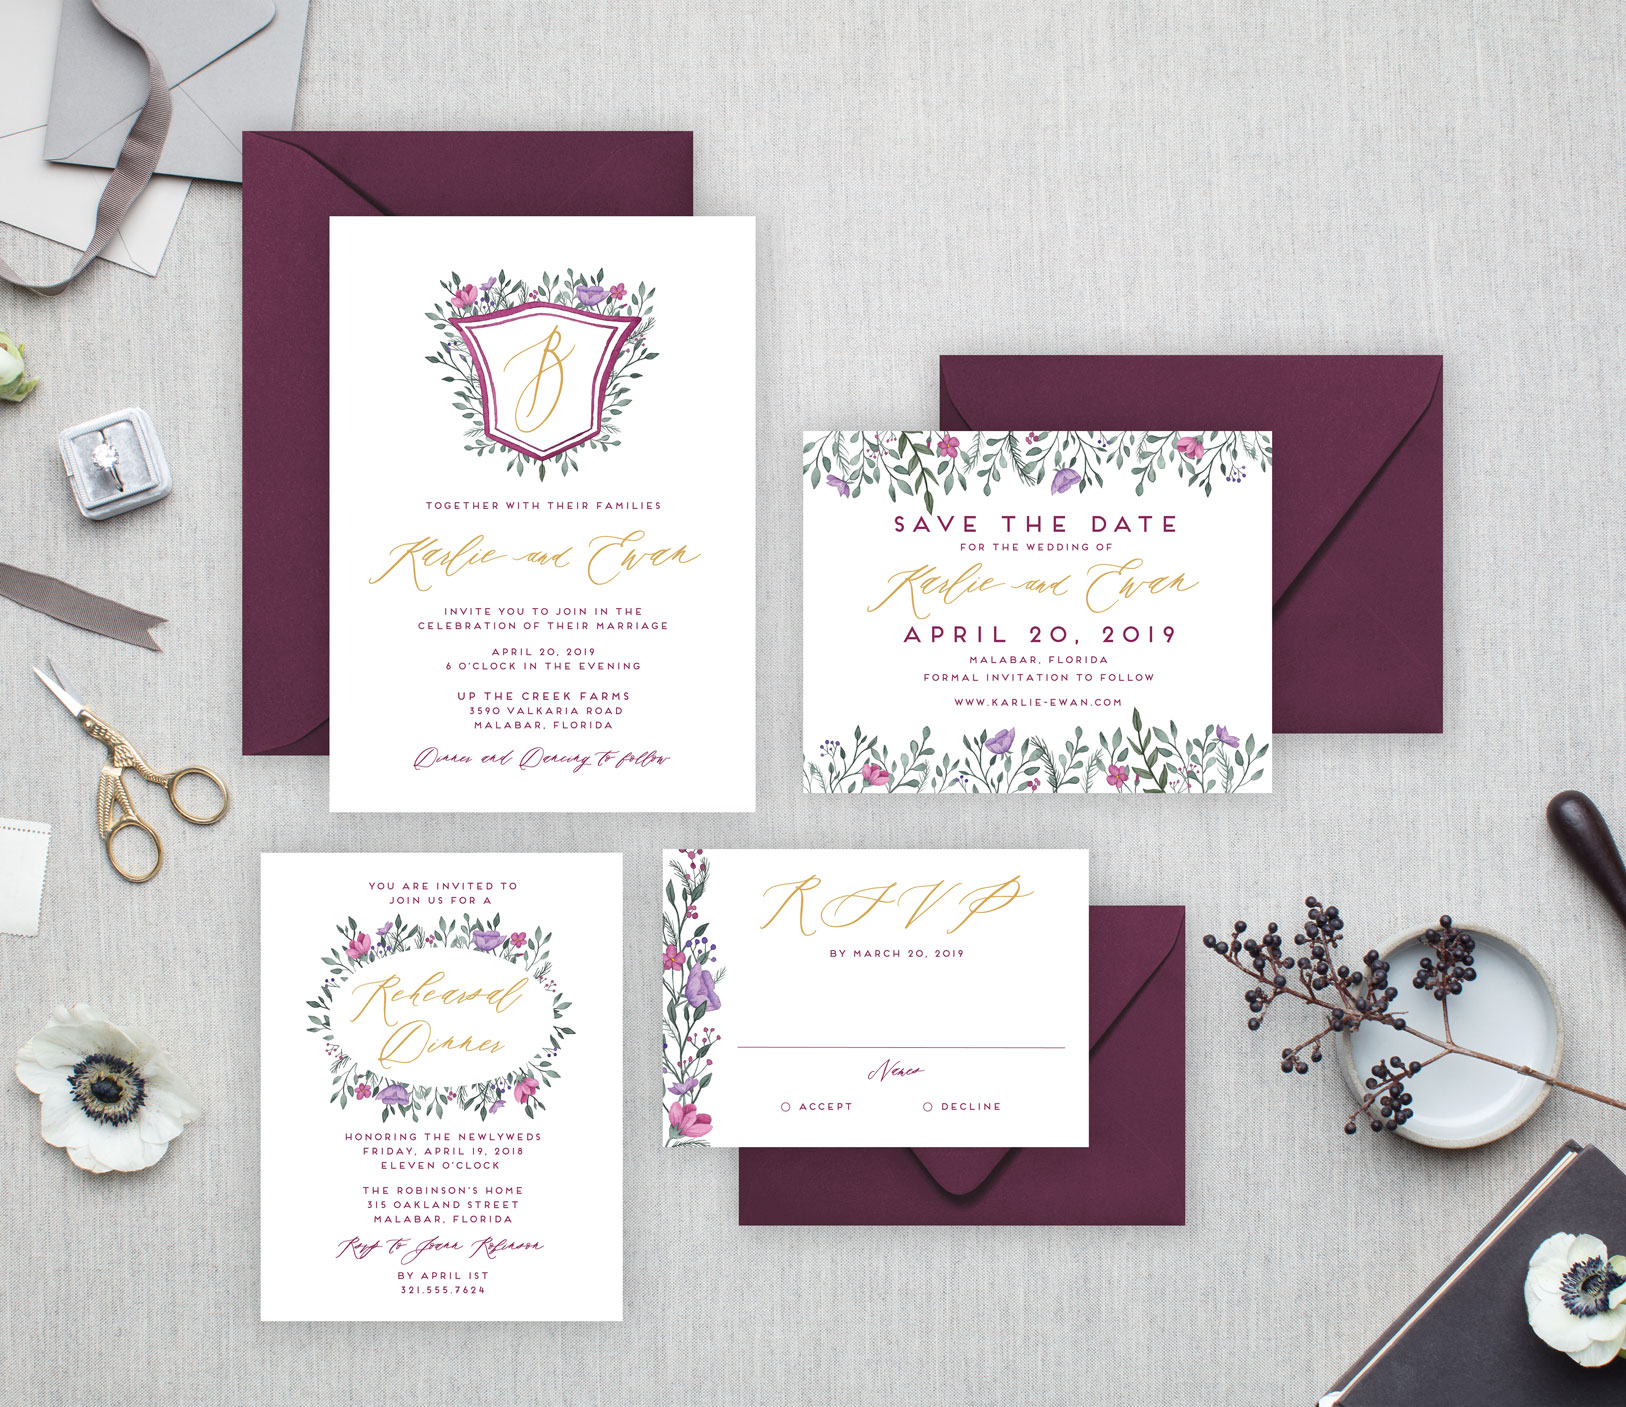 Karlie-Invitation-Suite---Watercolor-Crest-with-hand-painted-flowers---burgundy.jpg